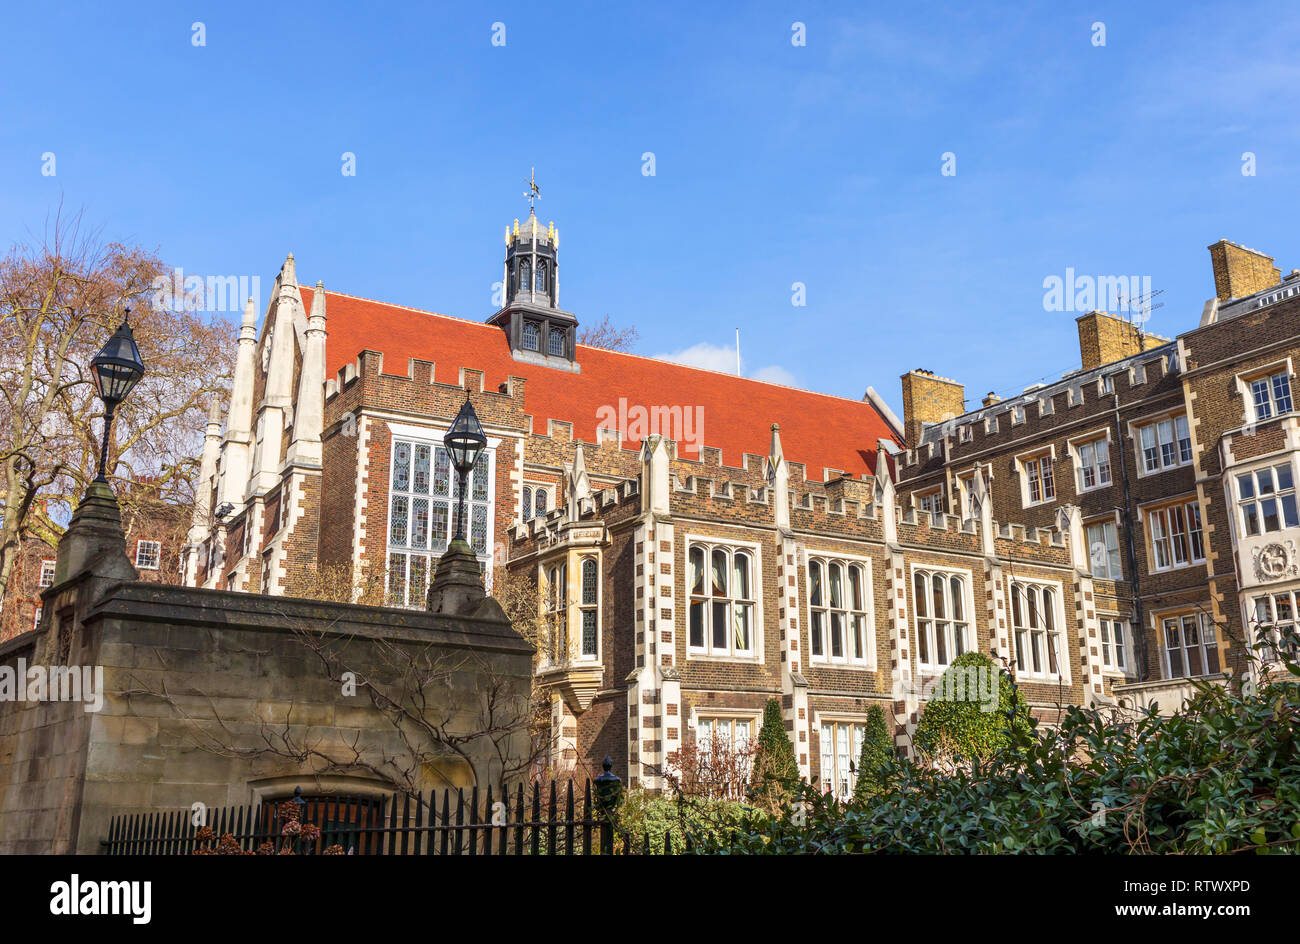 Inns of Court: Elizabethan Middle Temple Hall, Middle Temple Lane, London EC4 and garden - Stock Image